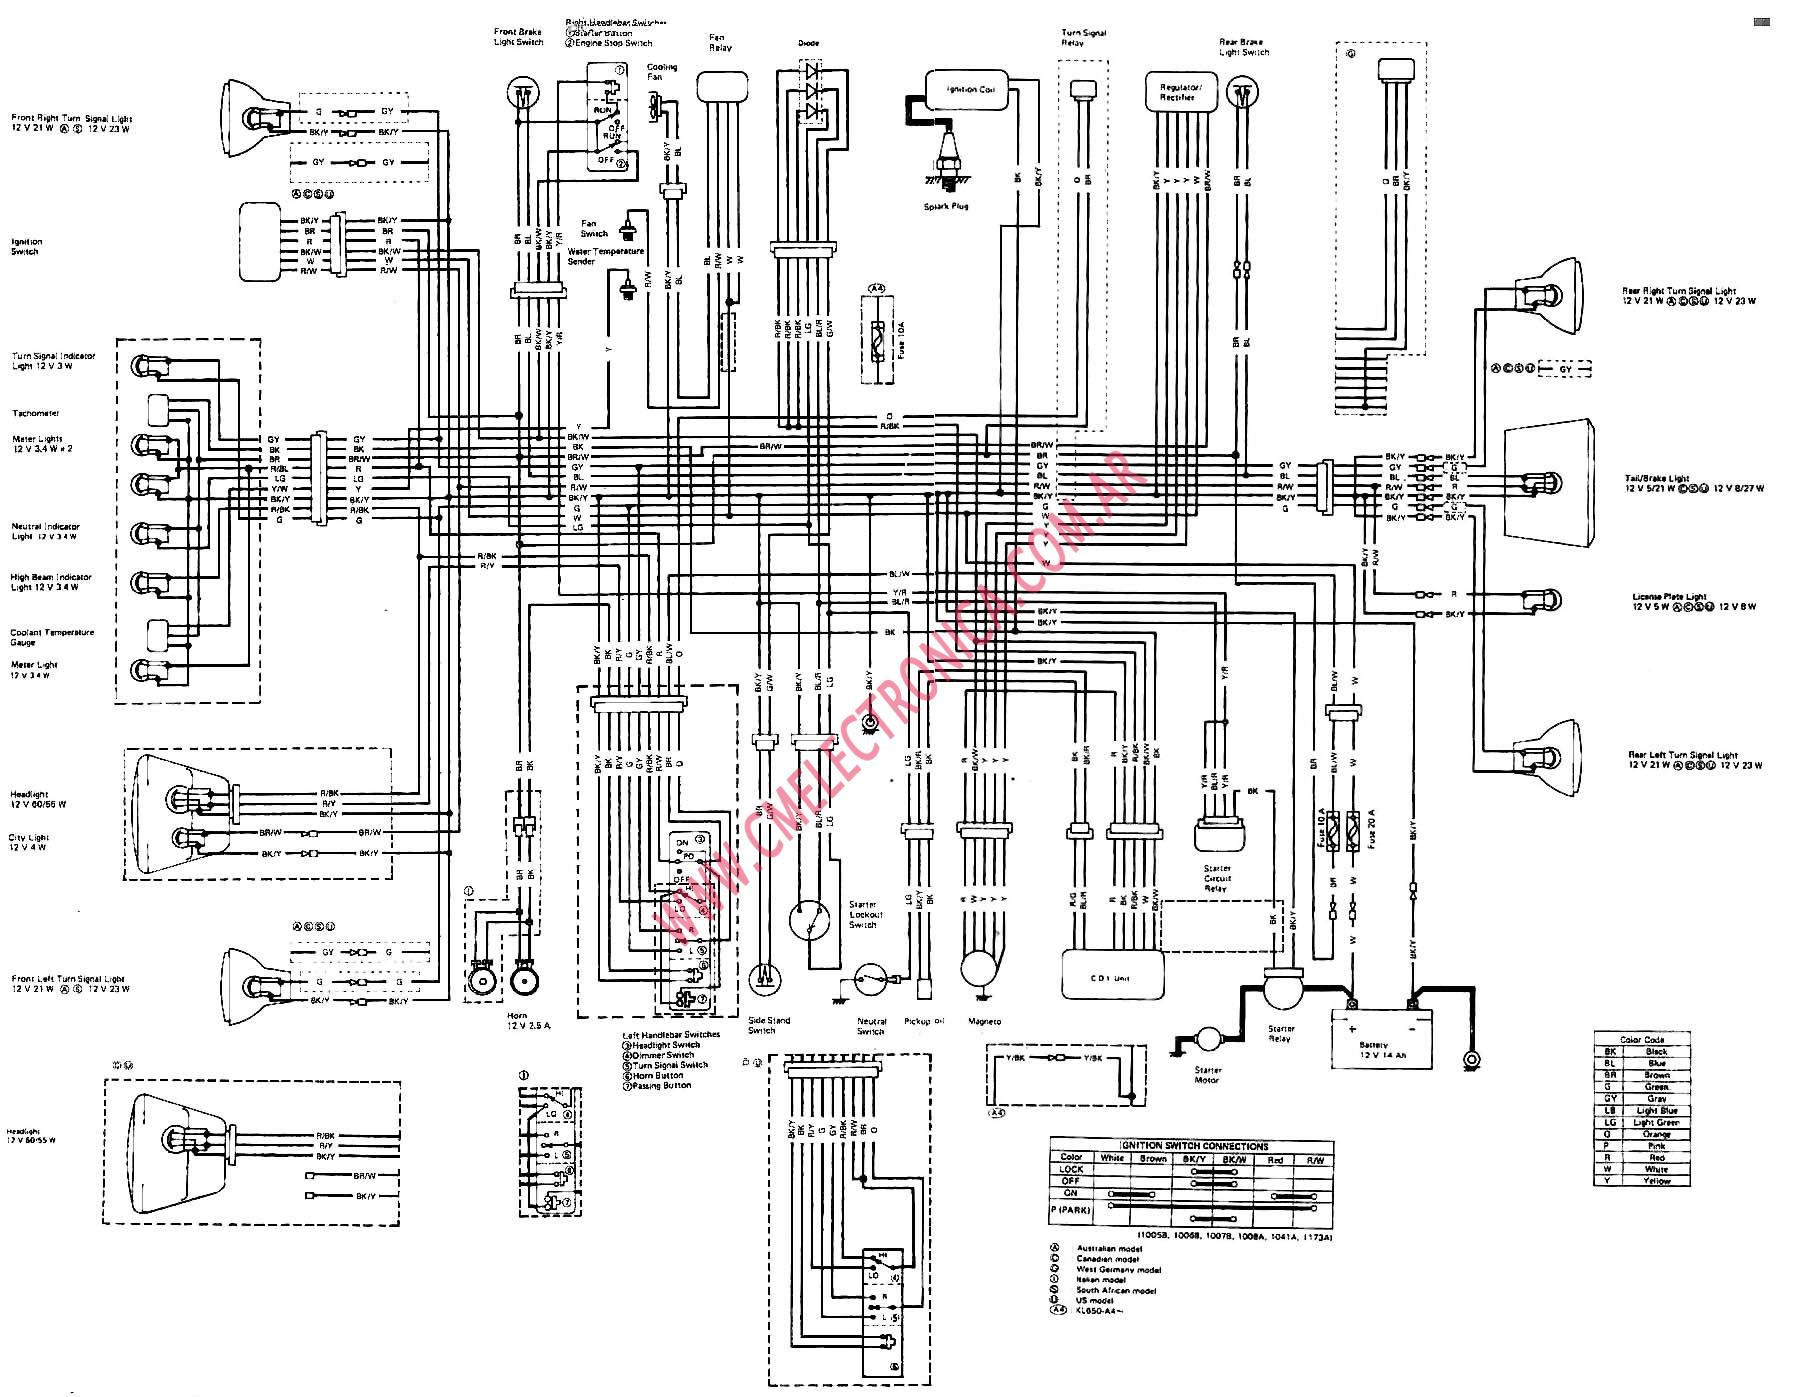 hight resolution of 2013 scion frs radio wiring diagram images gallery